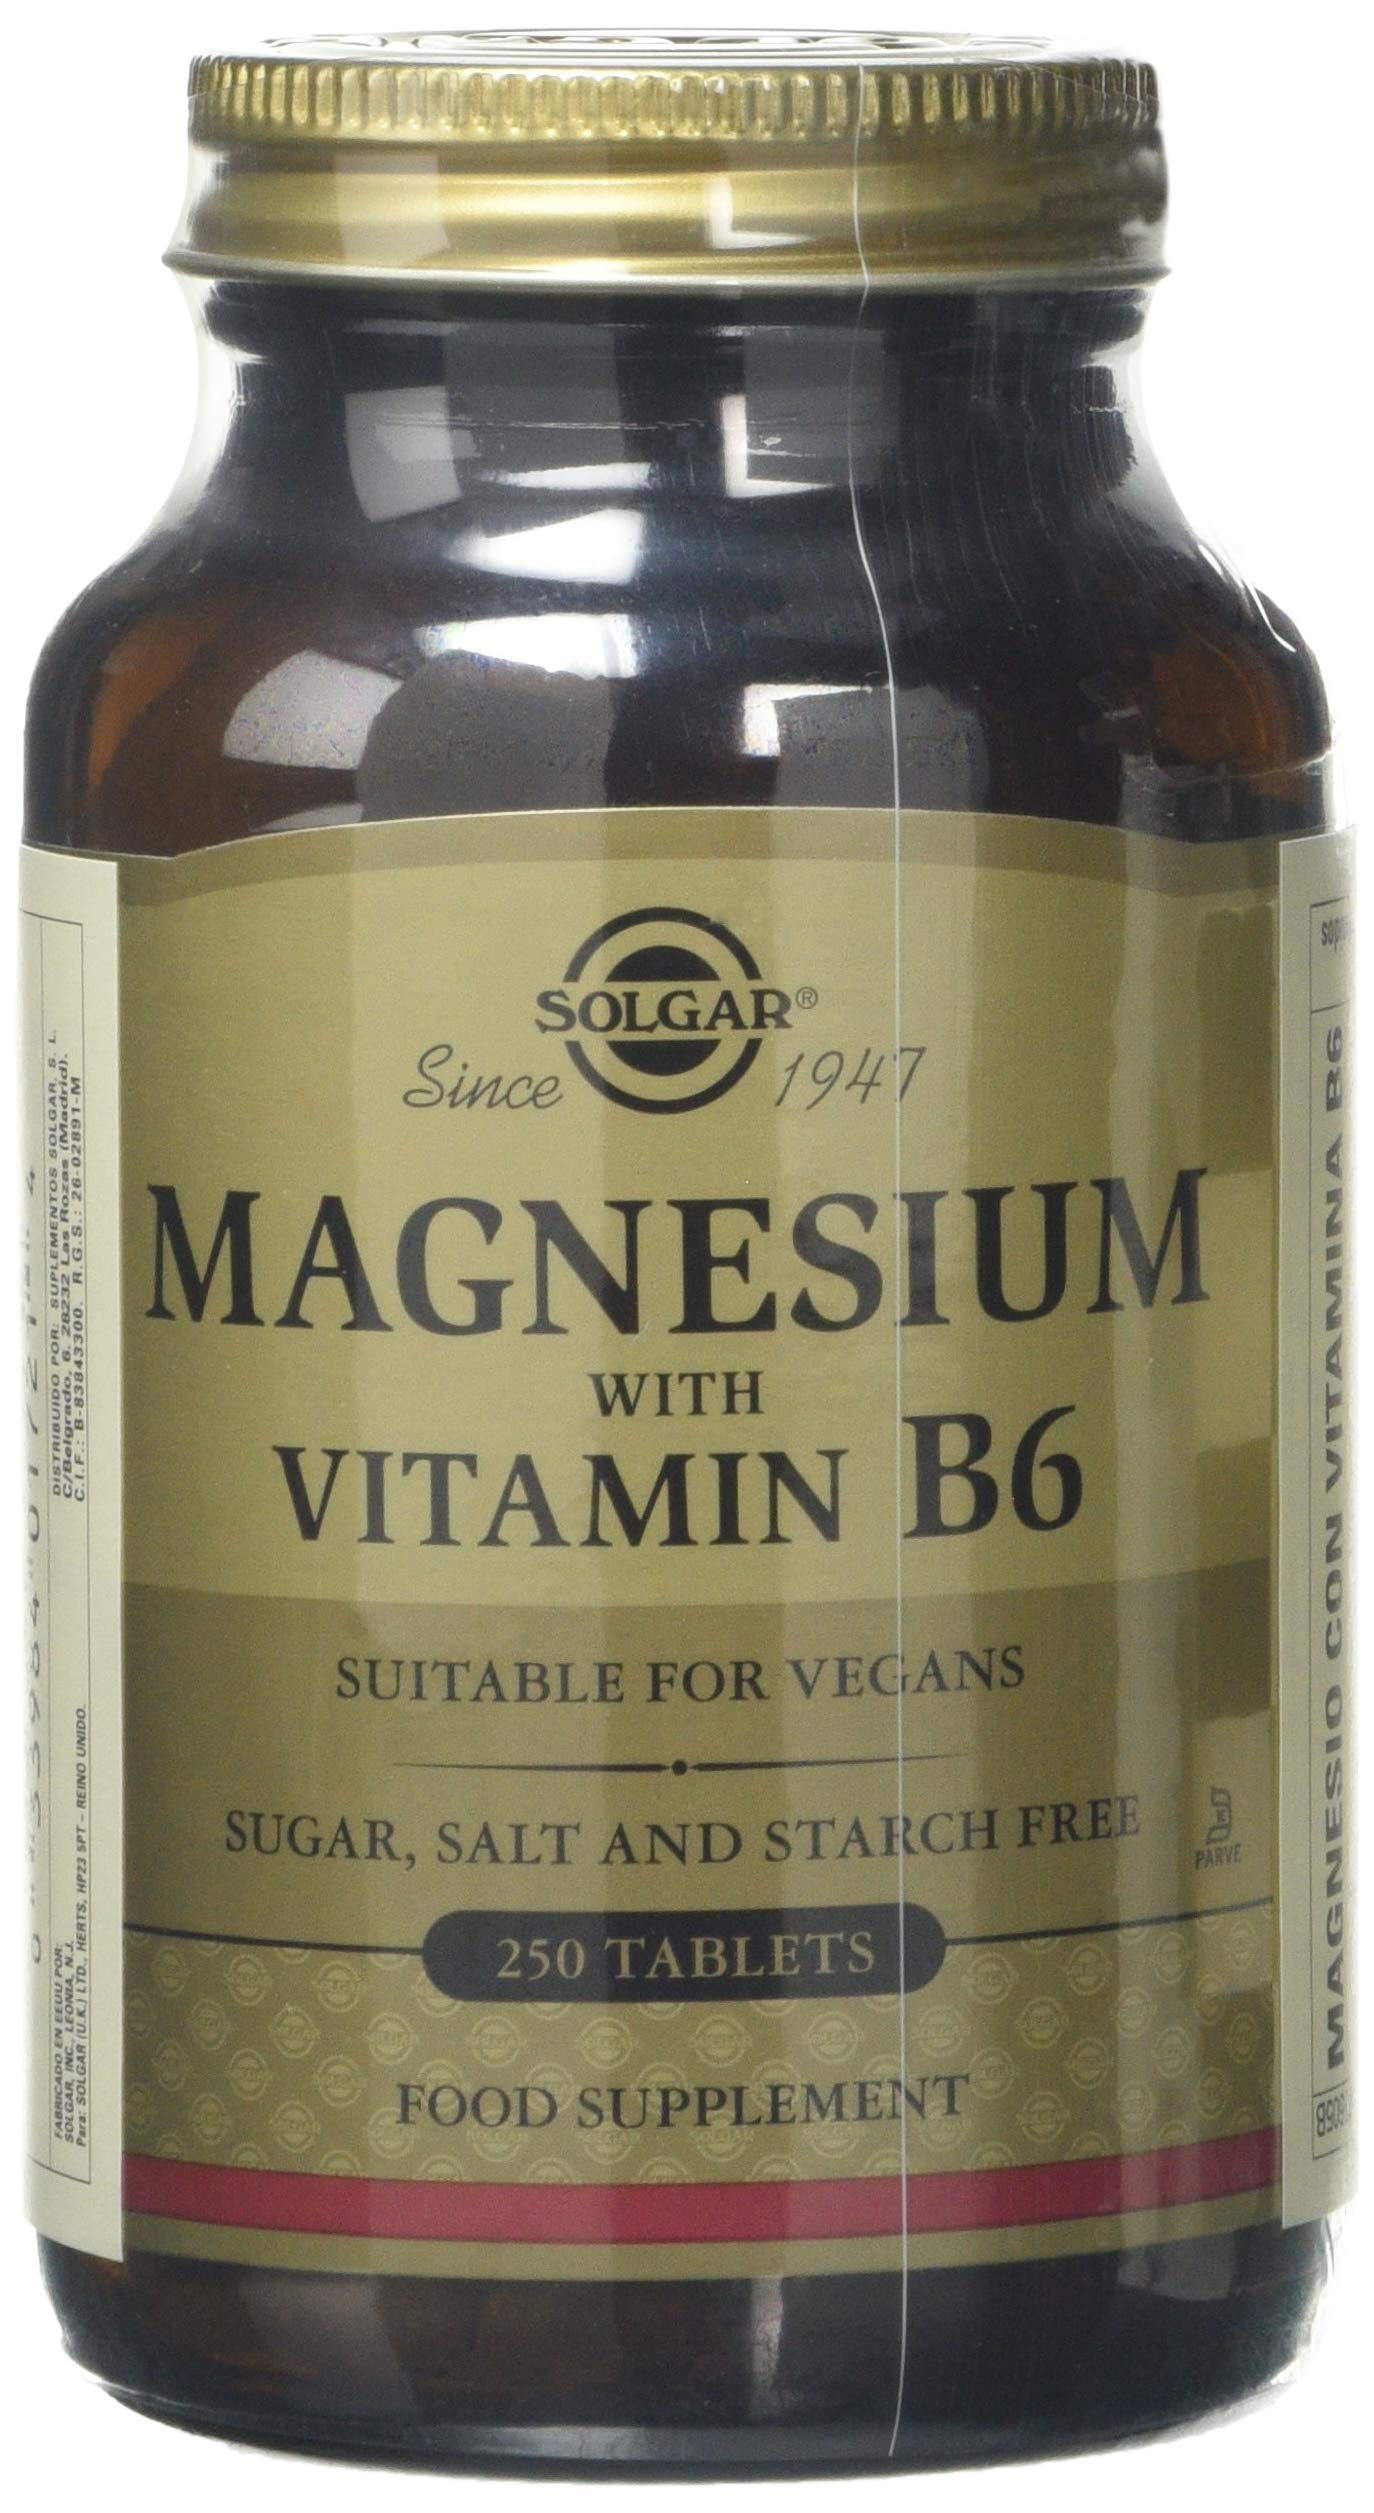 Solgar – Magnesium with Vitamin B6, 250 Tablets